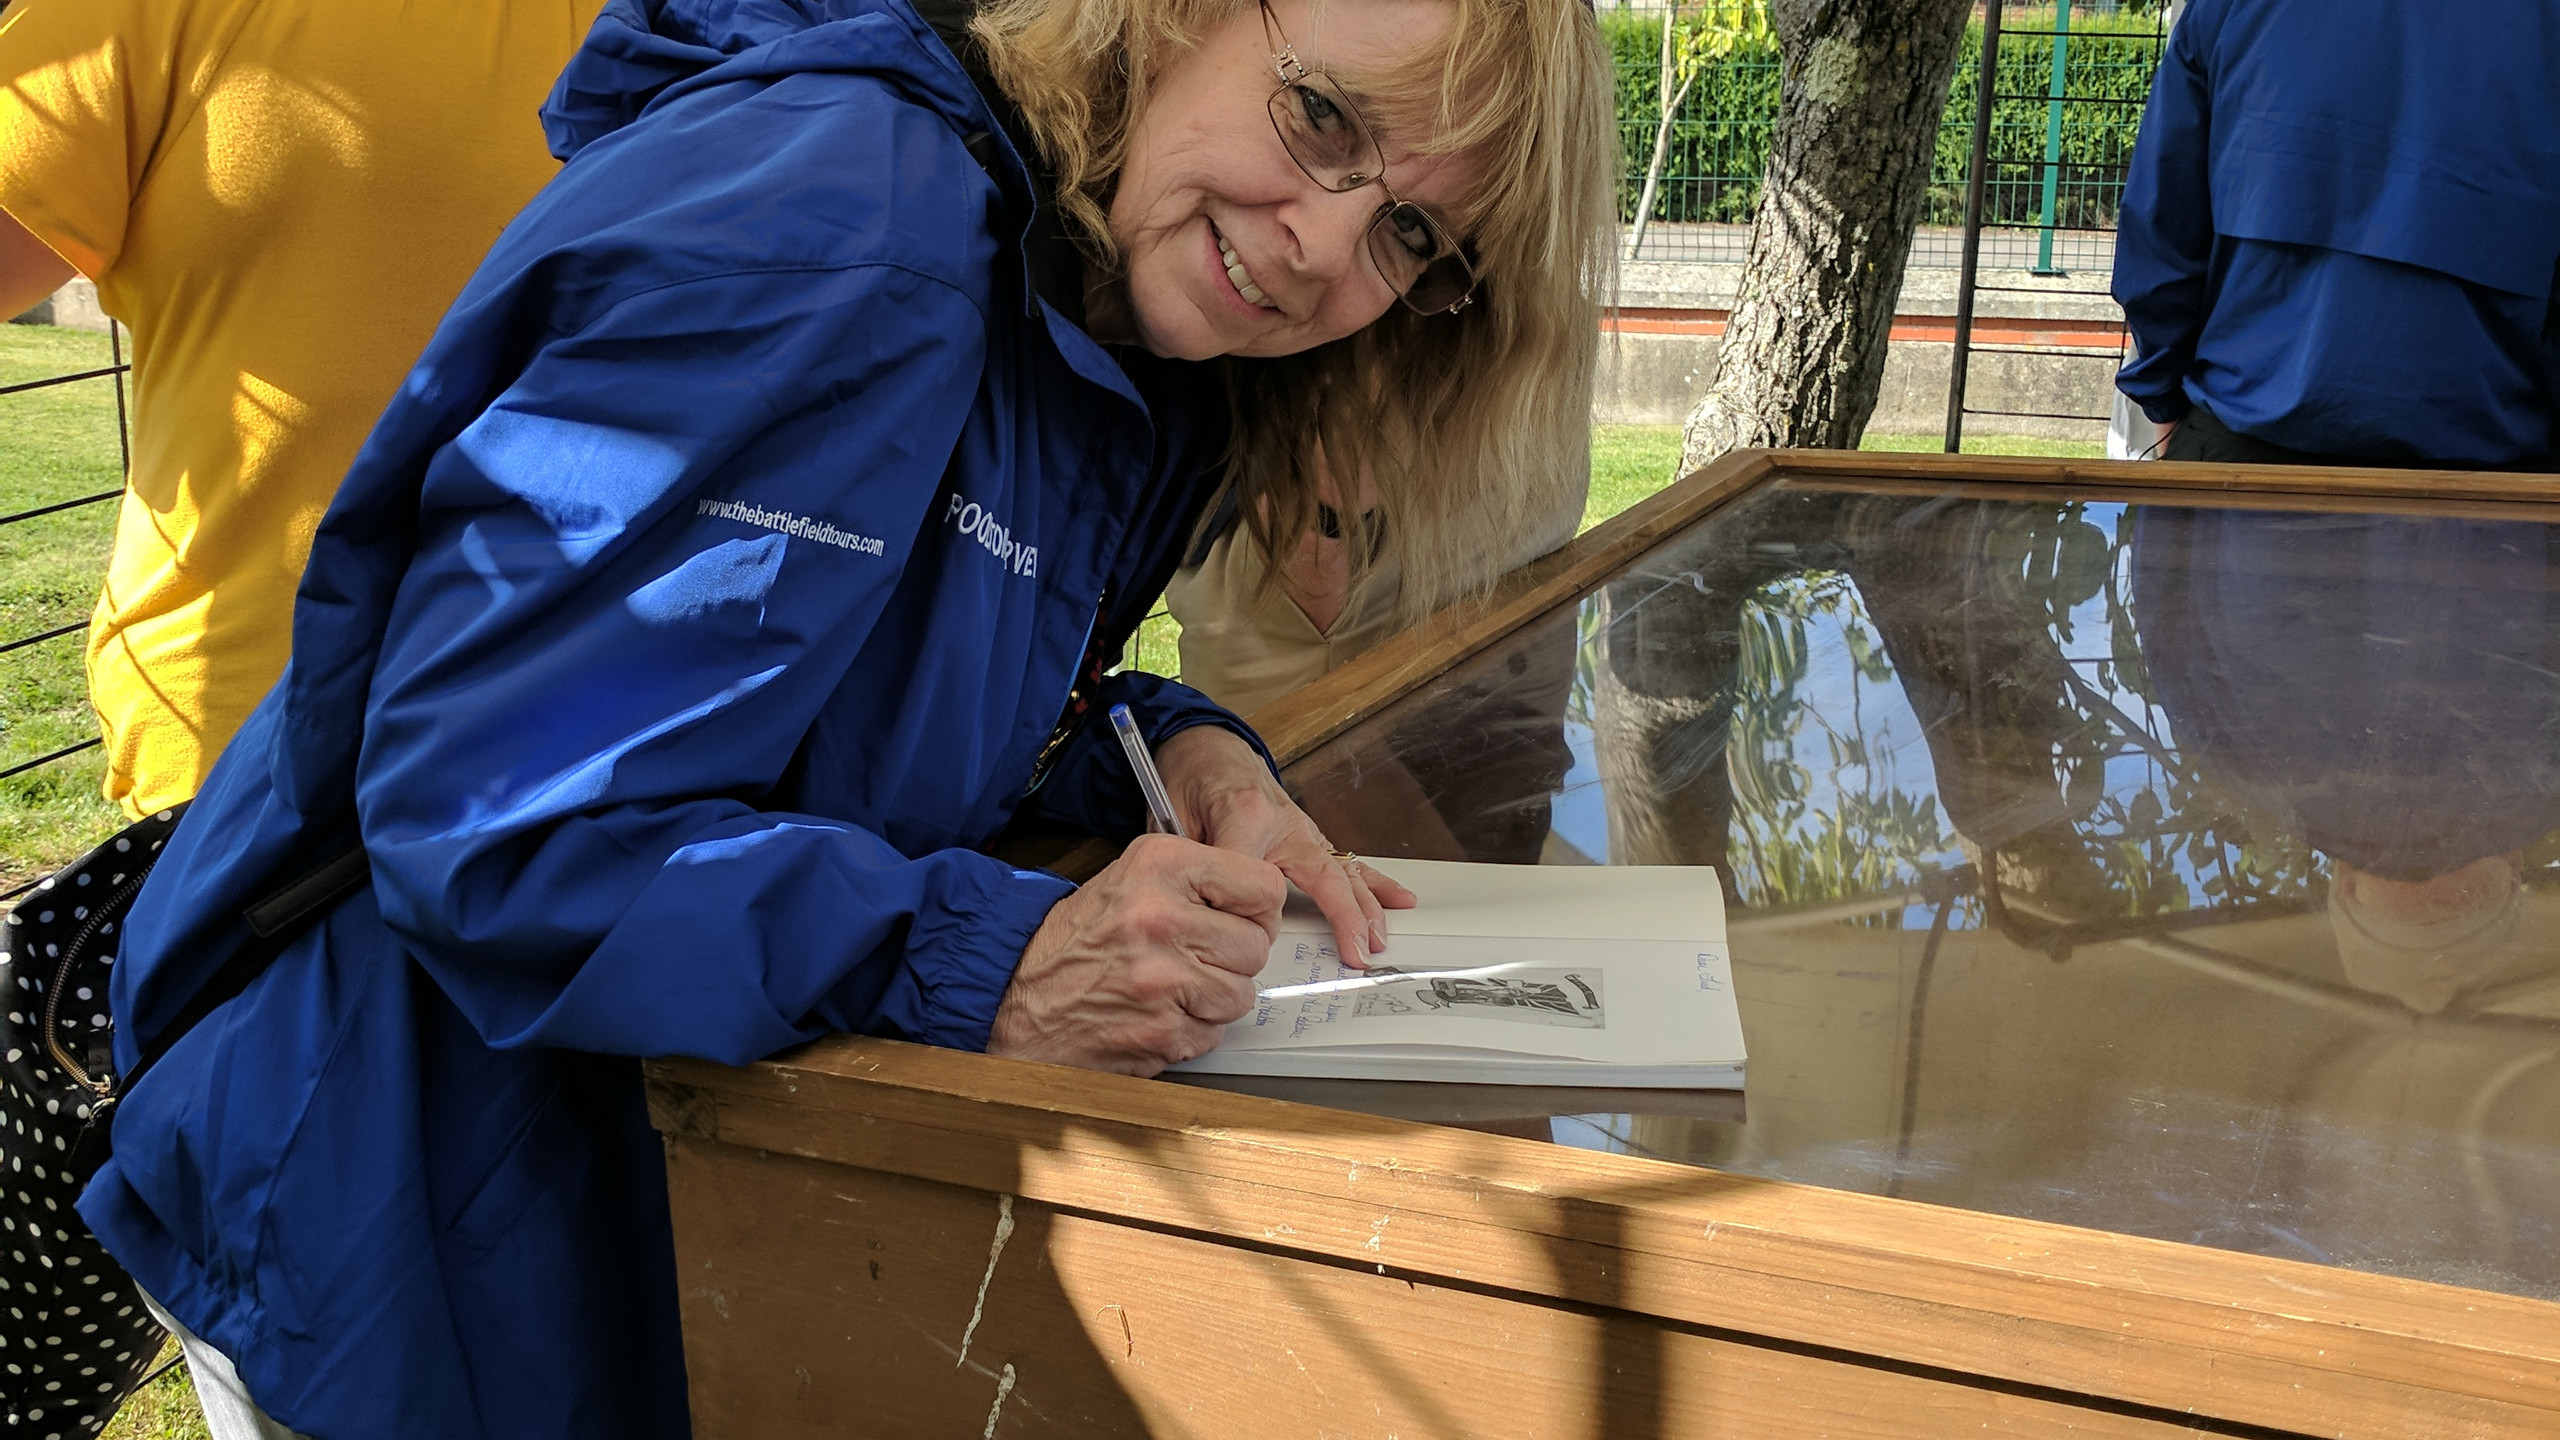 """Working with Jayne Poolton-Turvey, (co-author to her father's book """"Destined to Survive"""") was an absolute highlight for me this year. Here she is signing the book during the Dieppe 75 Tour for the community of  Saint-Nicolas-d'Aliermont.   For more information, visit: www.everymanremembered.com"""